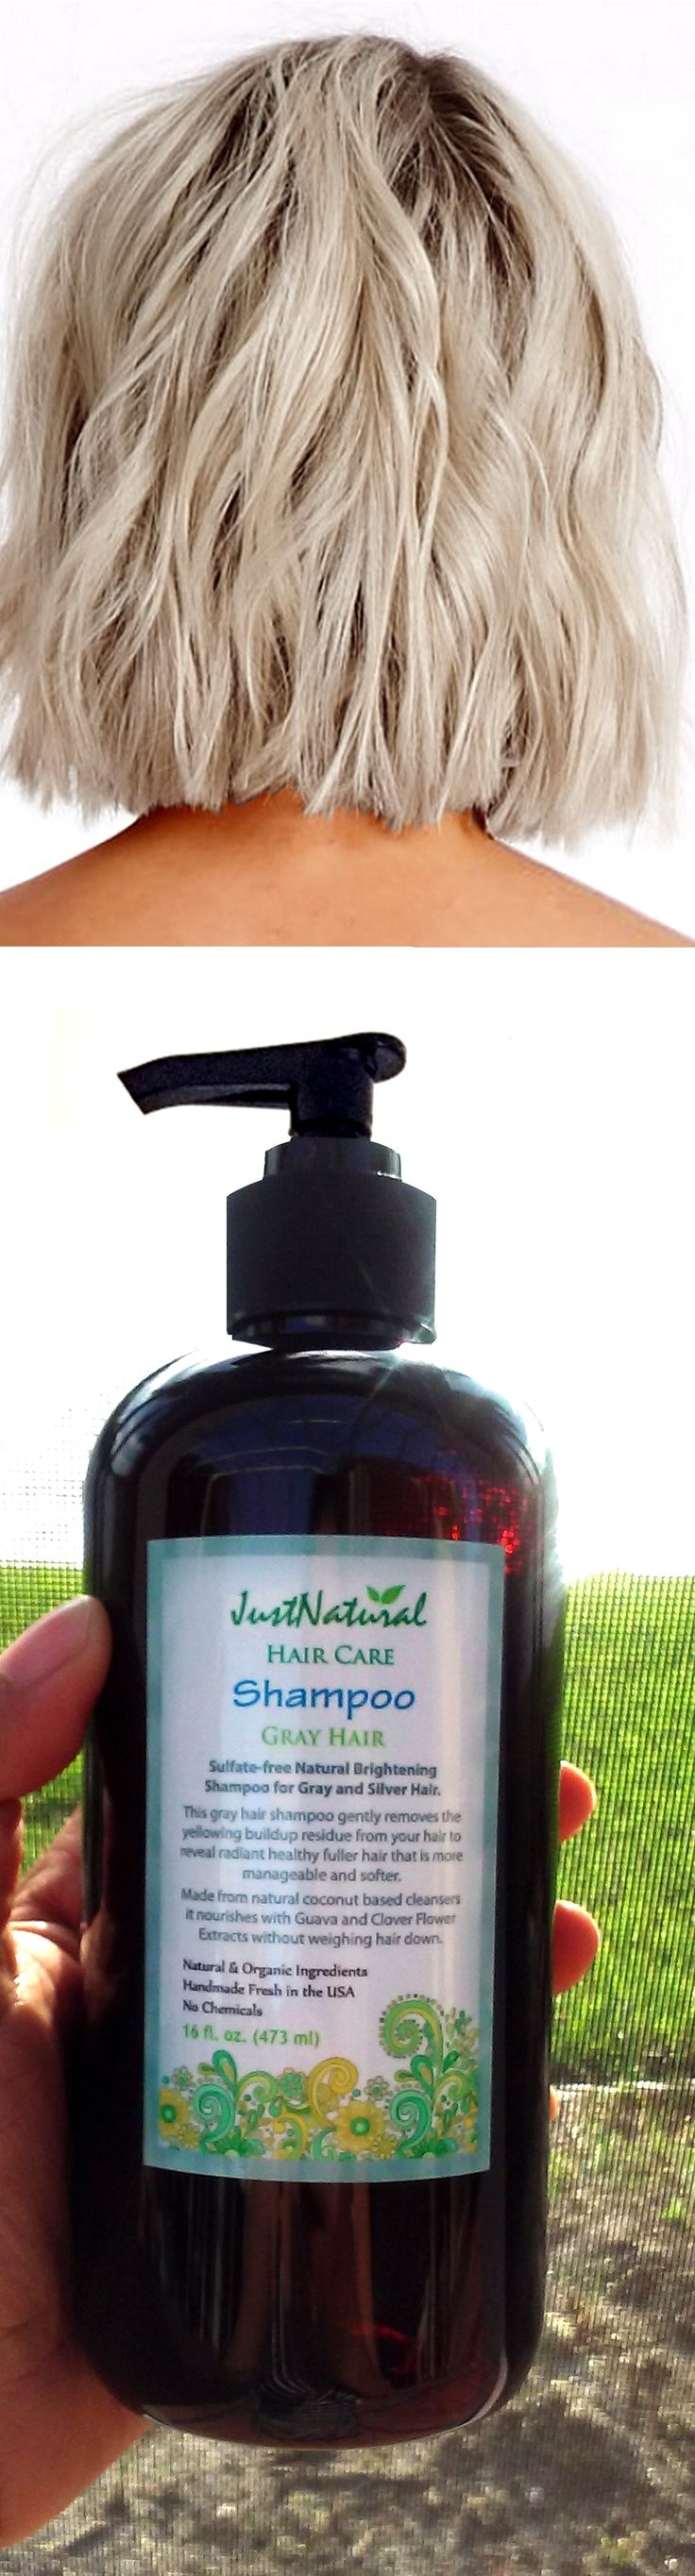 My hair felt so amazing after using this shampoo for the first time. It took my hair a week or so to adjust to an organic shampoo. This shampoo leaves my hair shiny and gorgeous it moisturizes, it gives silky hair, and smells good in the end.